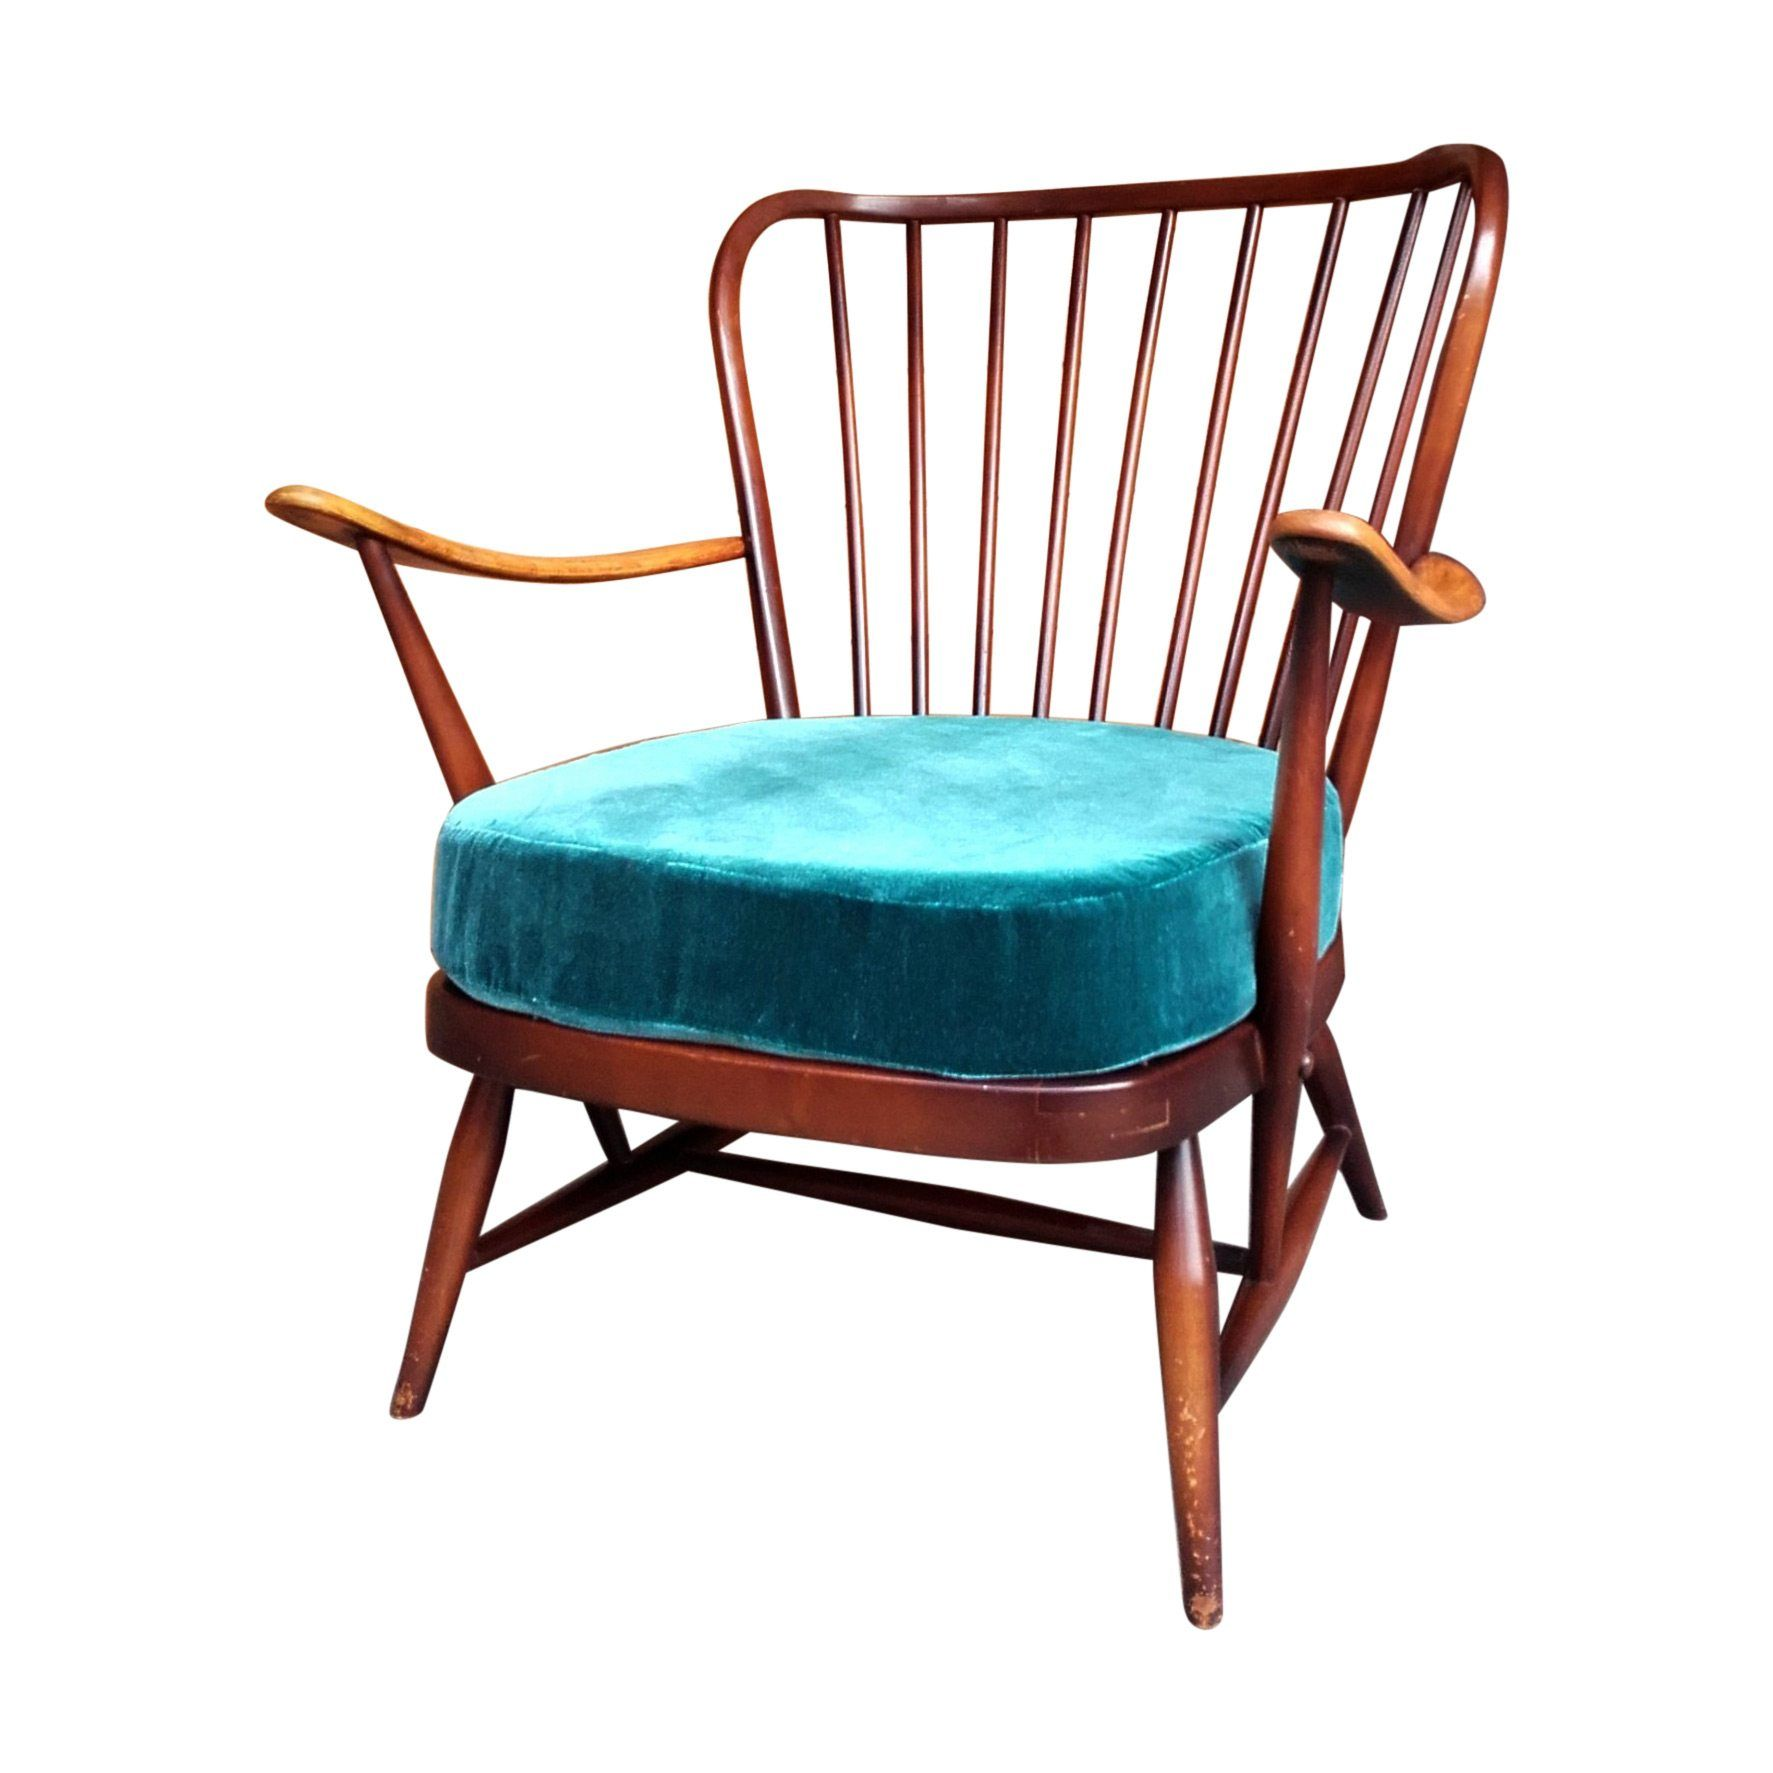 Gorgeously Curvy Ercol Model  477 Easy ChairGorgeously Curvy Ercol Model  477 Easy Chair   Layer   Chairs  . Ercol Easy Chairs For Sale. Home Design Ideas